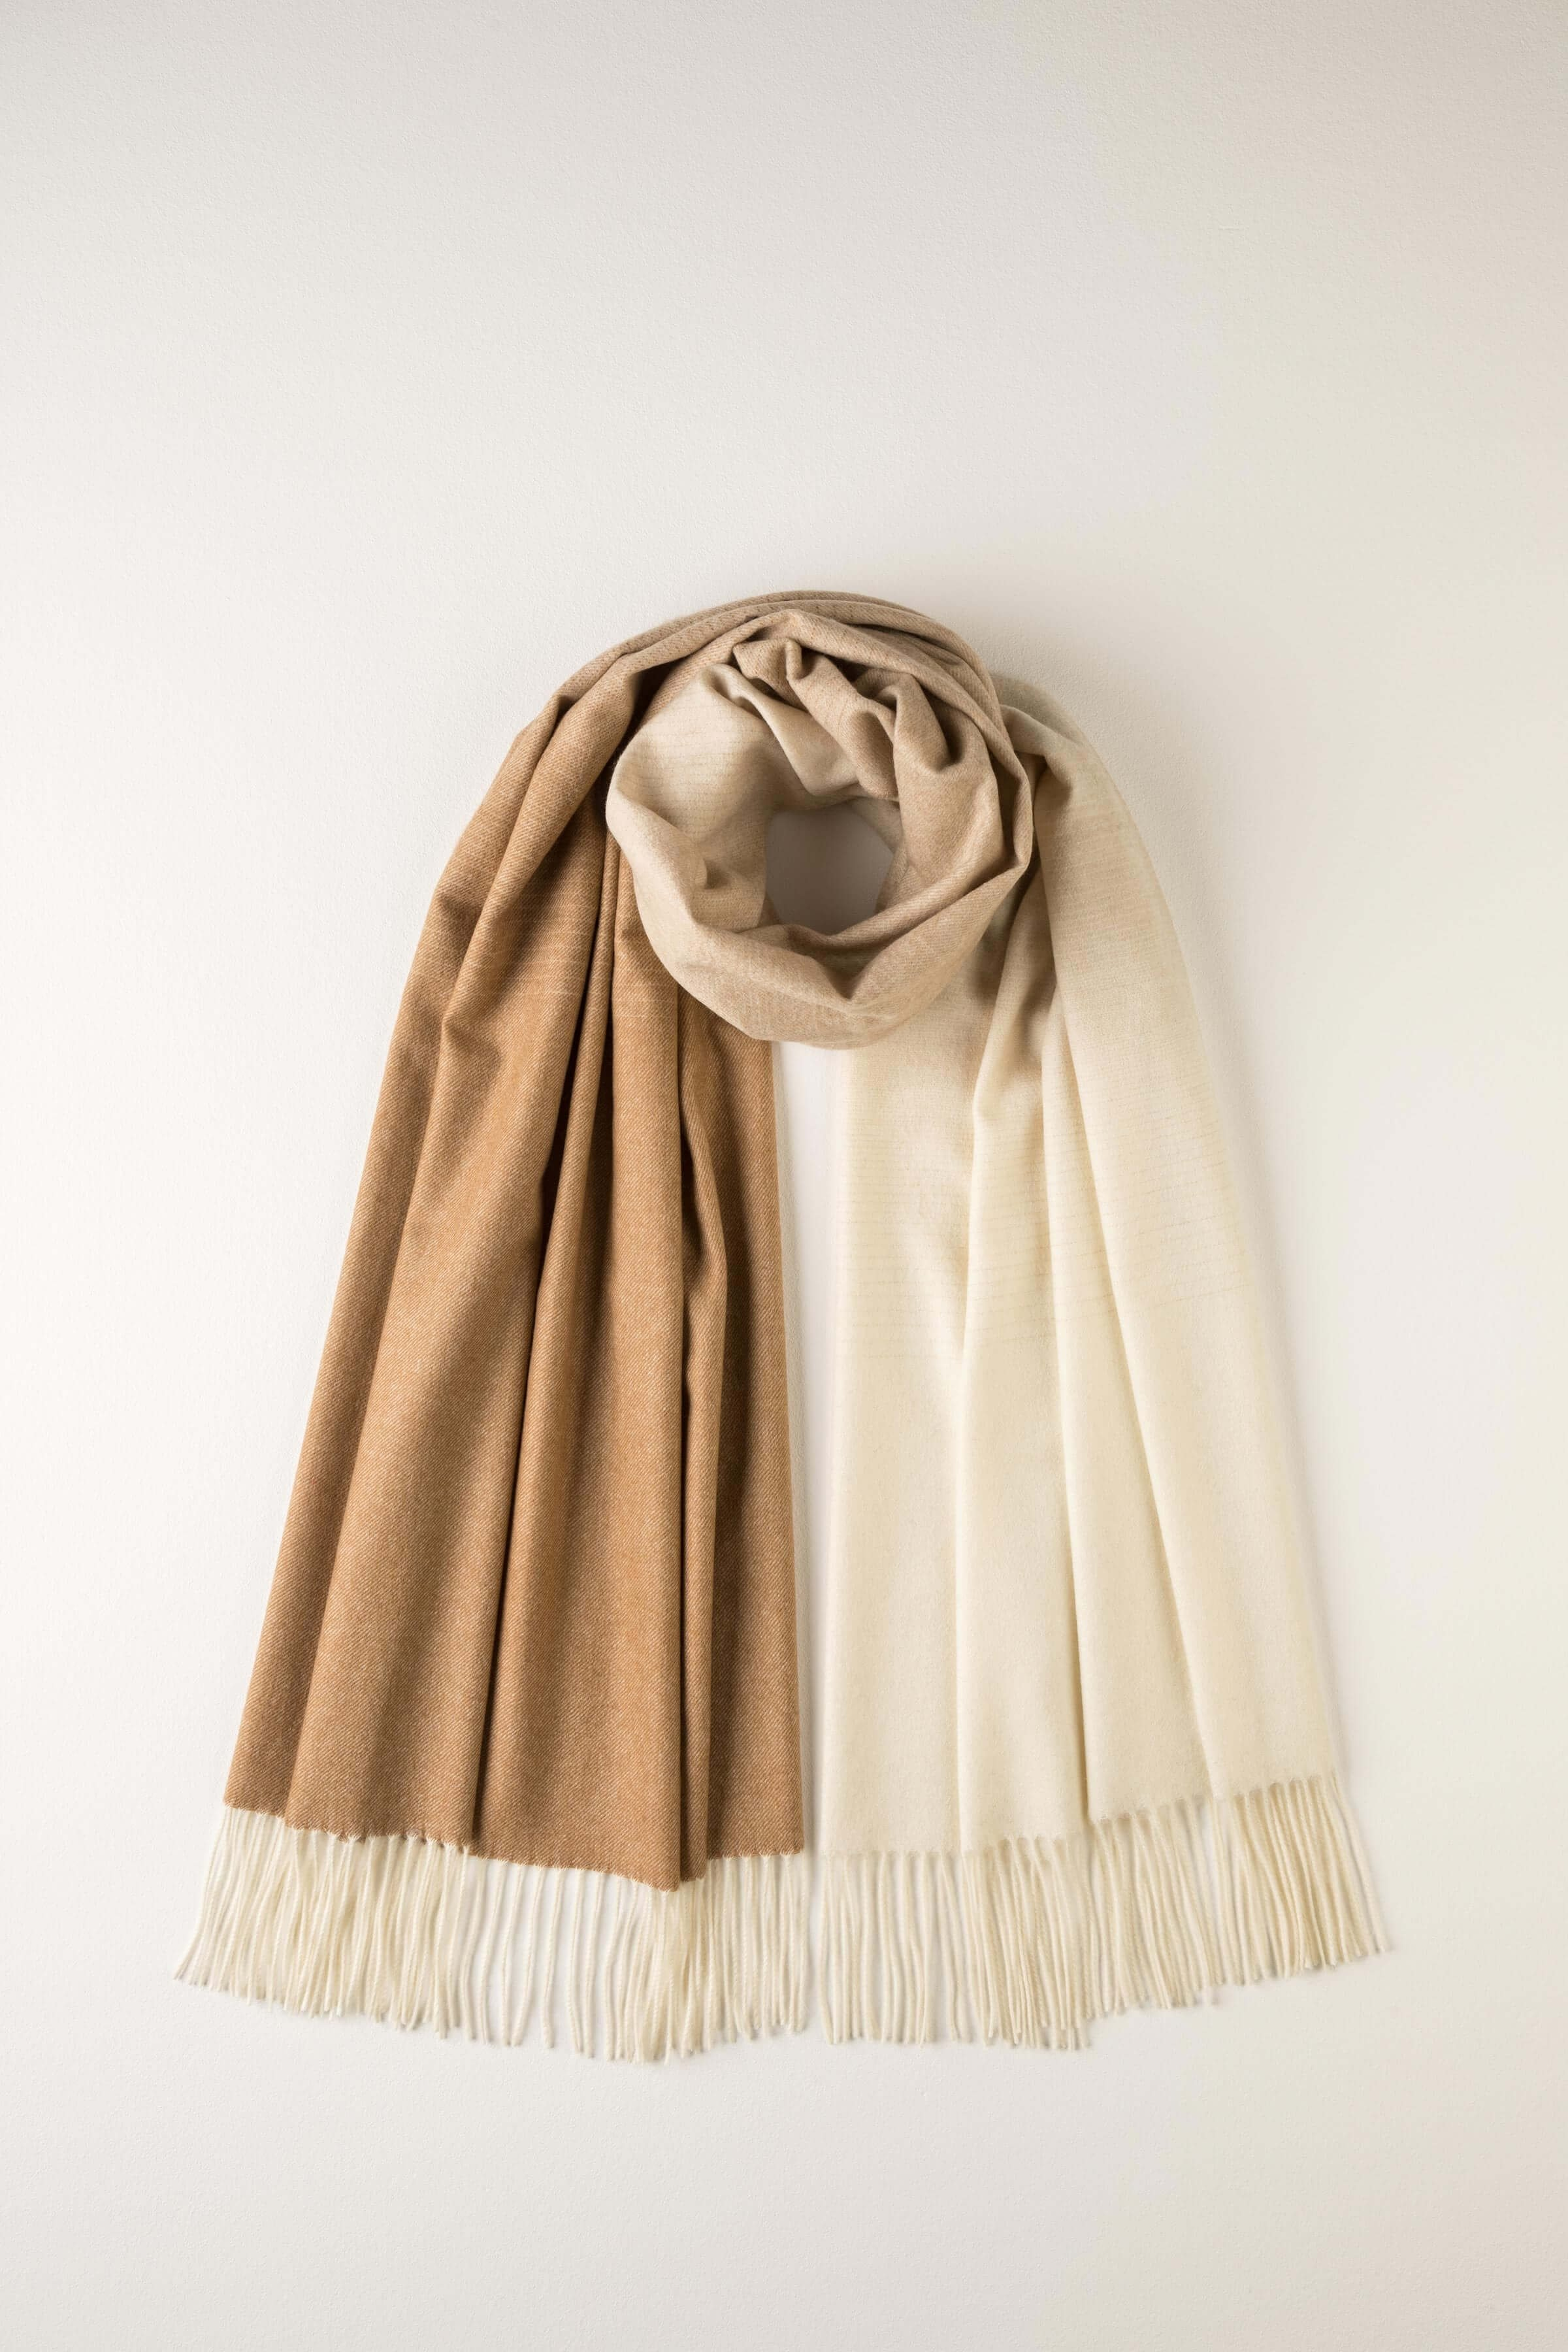 Johnstons(ジョンストンズ)NATURAL OMBRE CASHMERE STOLE